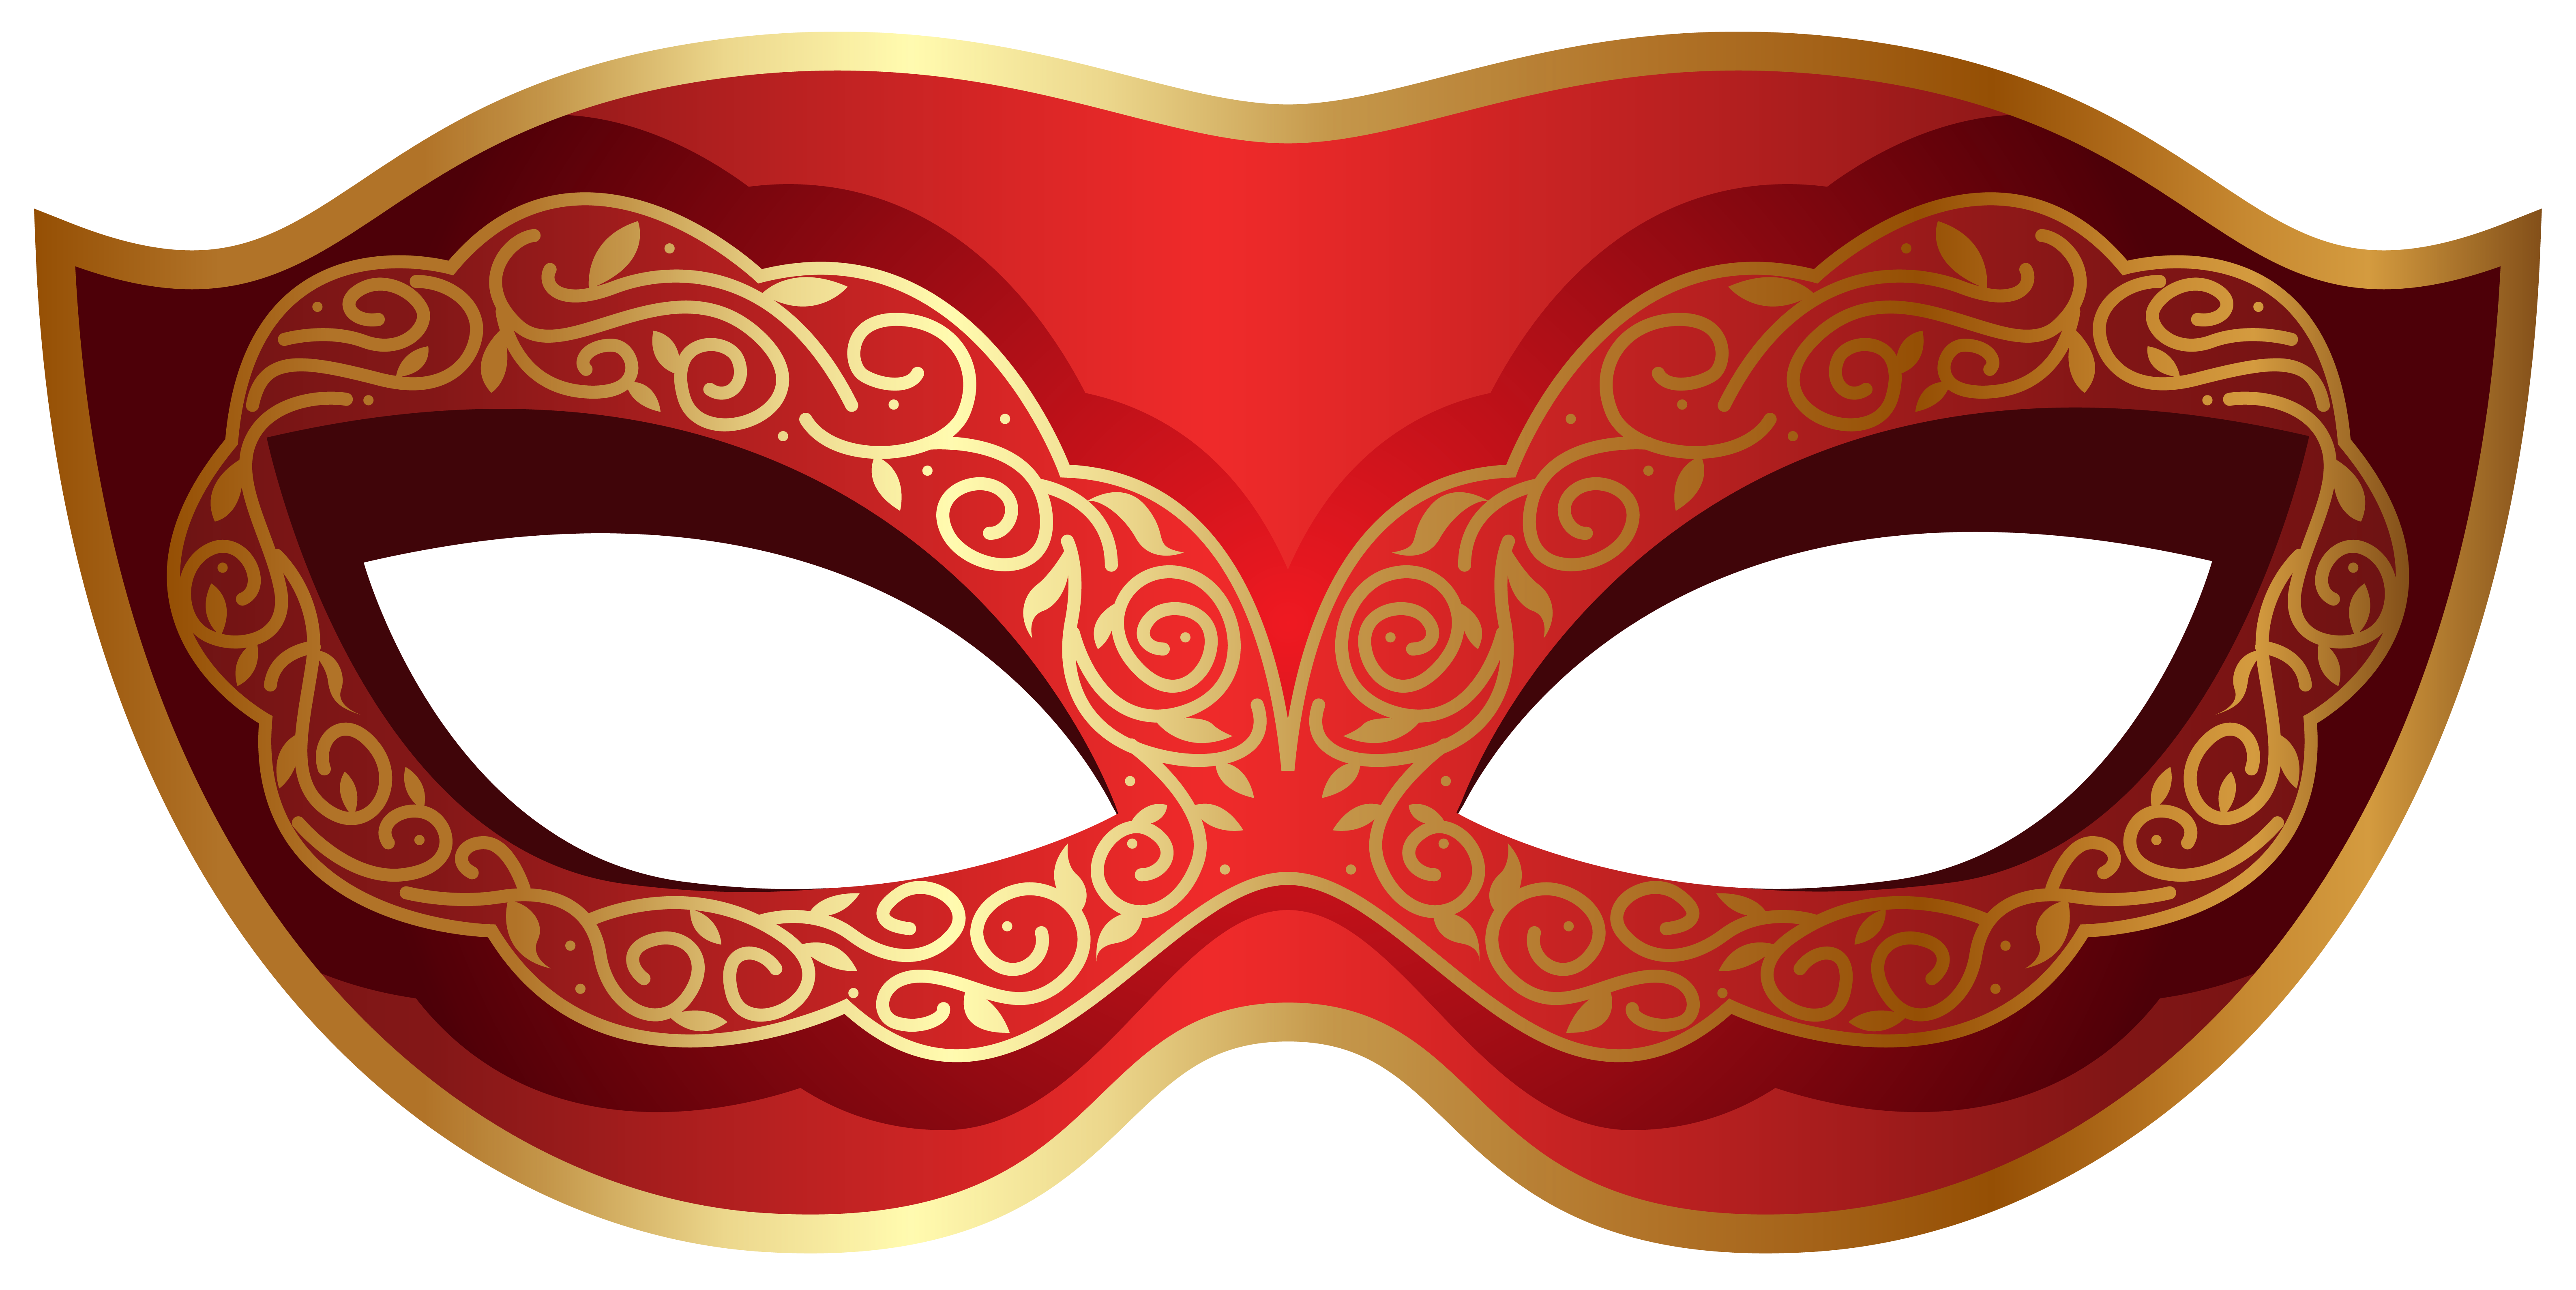 Red and Gold Carnival Mask PNG Clip Art Image.